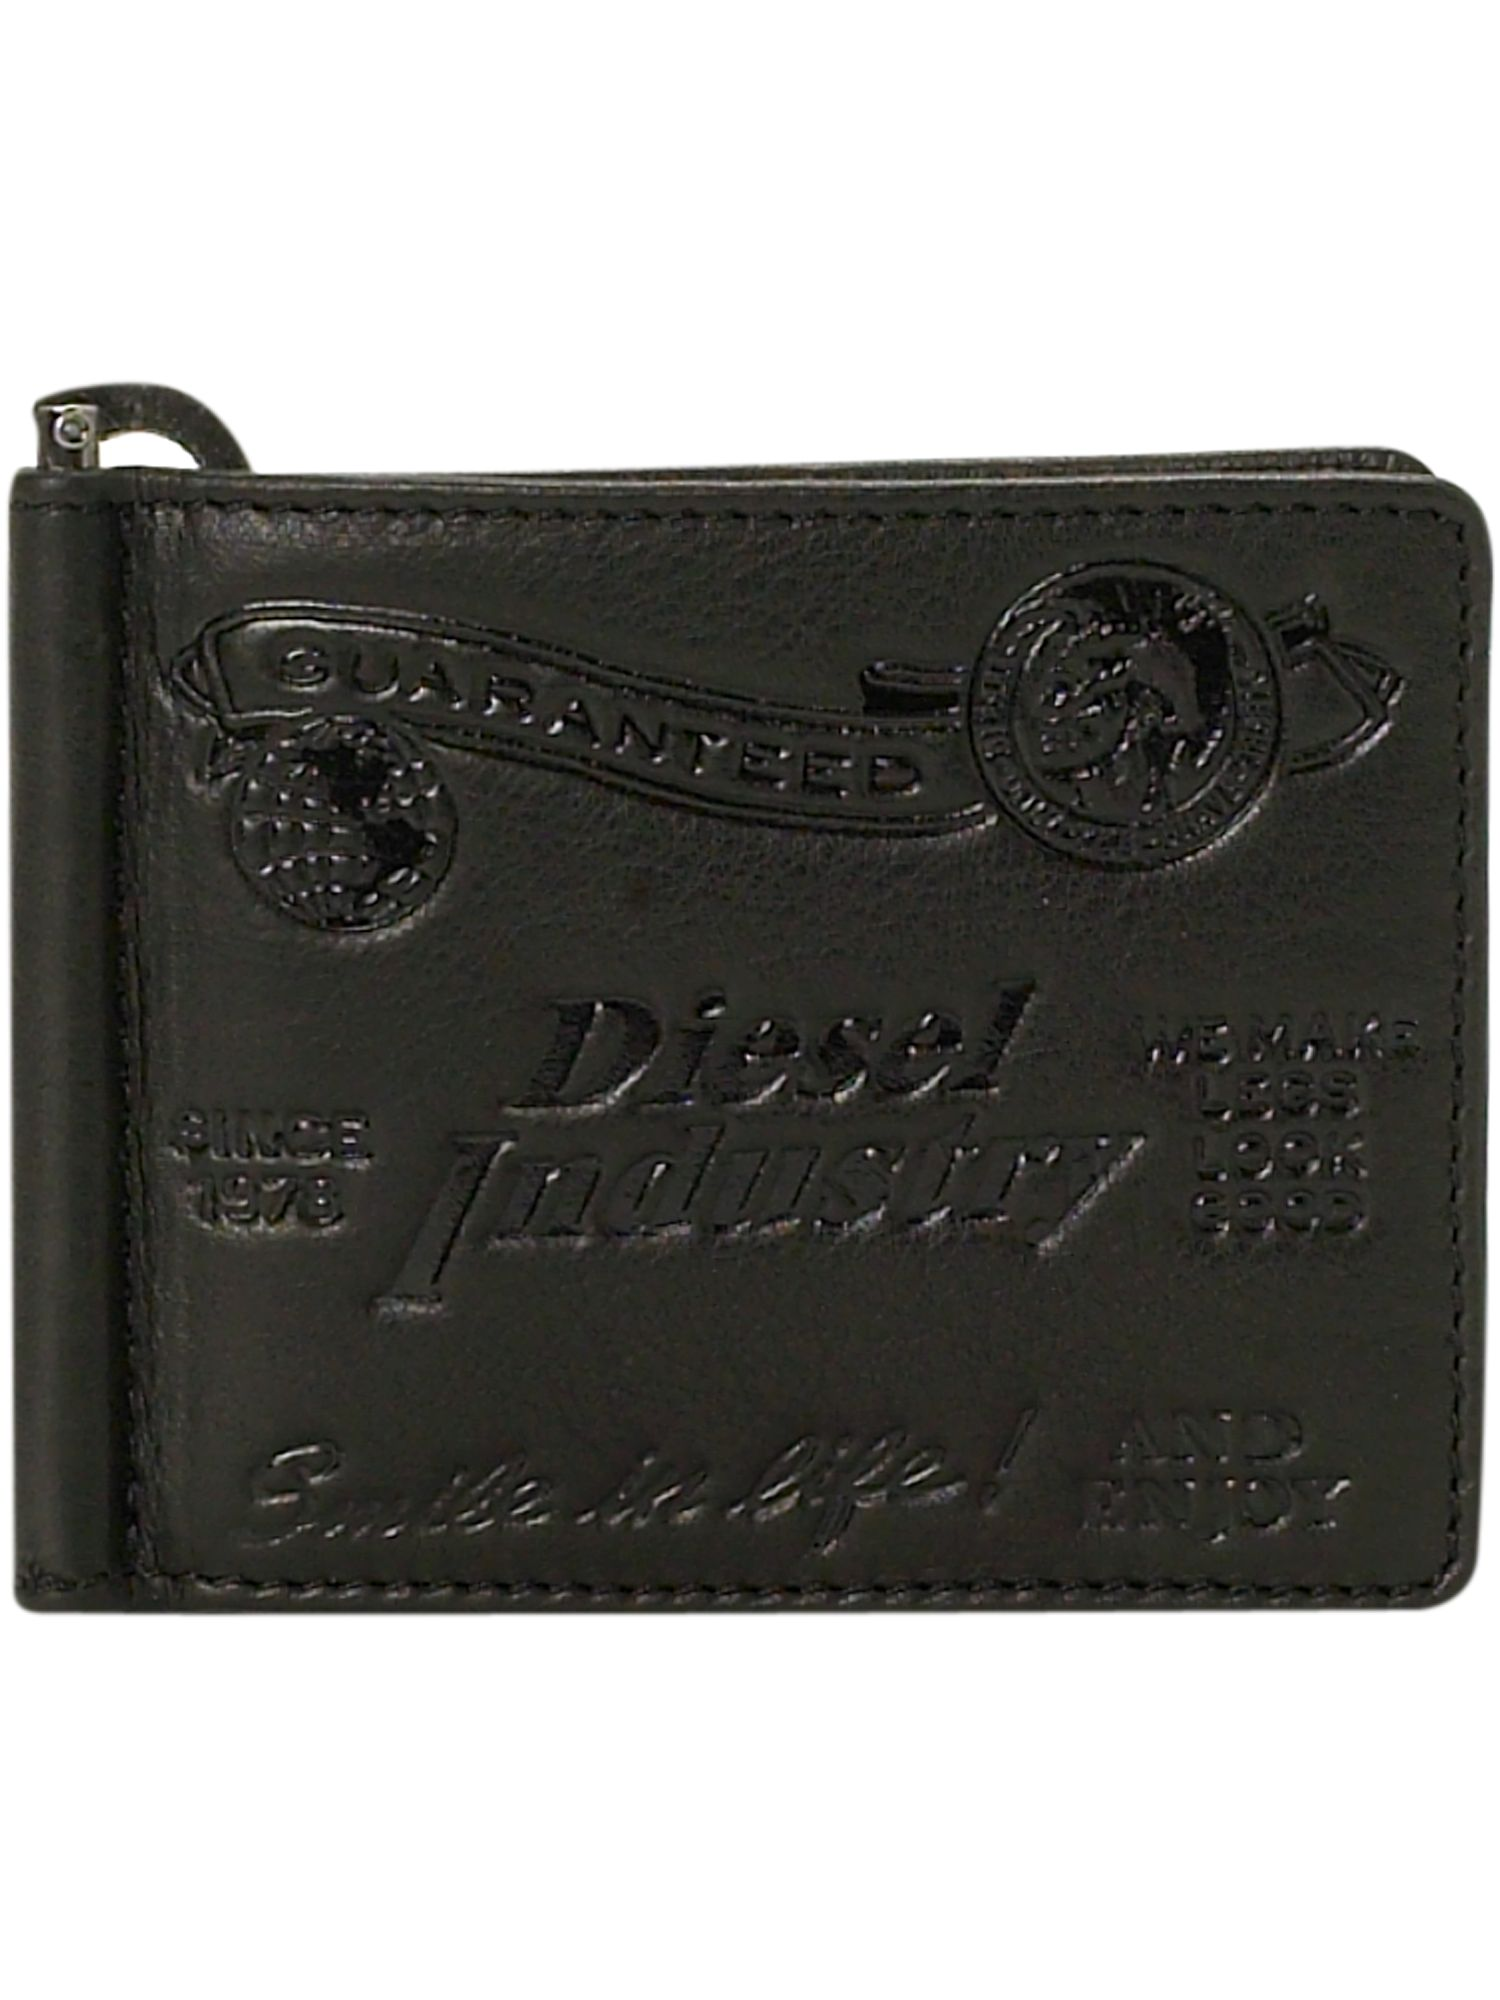 Diesel Card and notes holder leather wallet product image